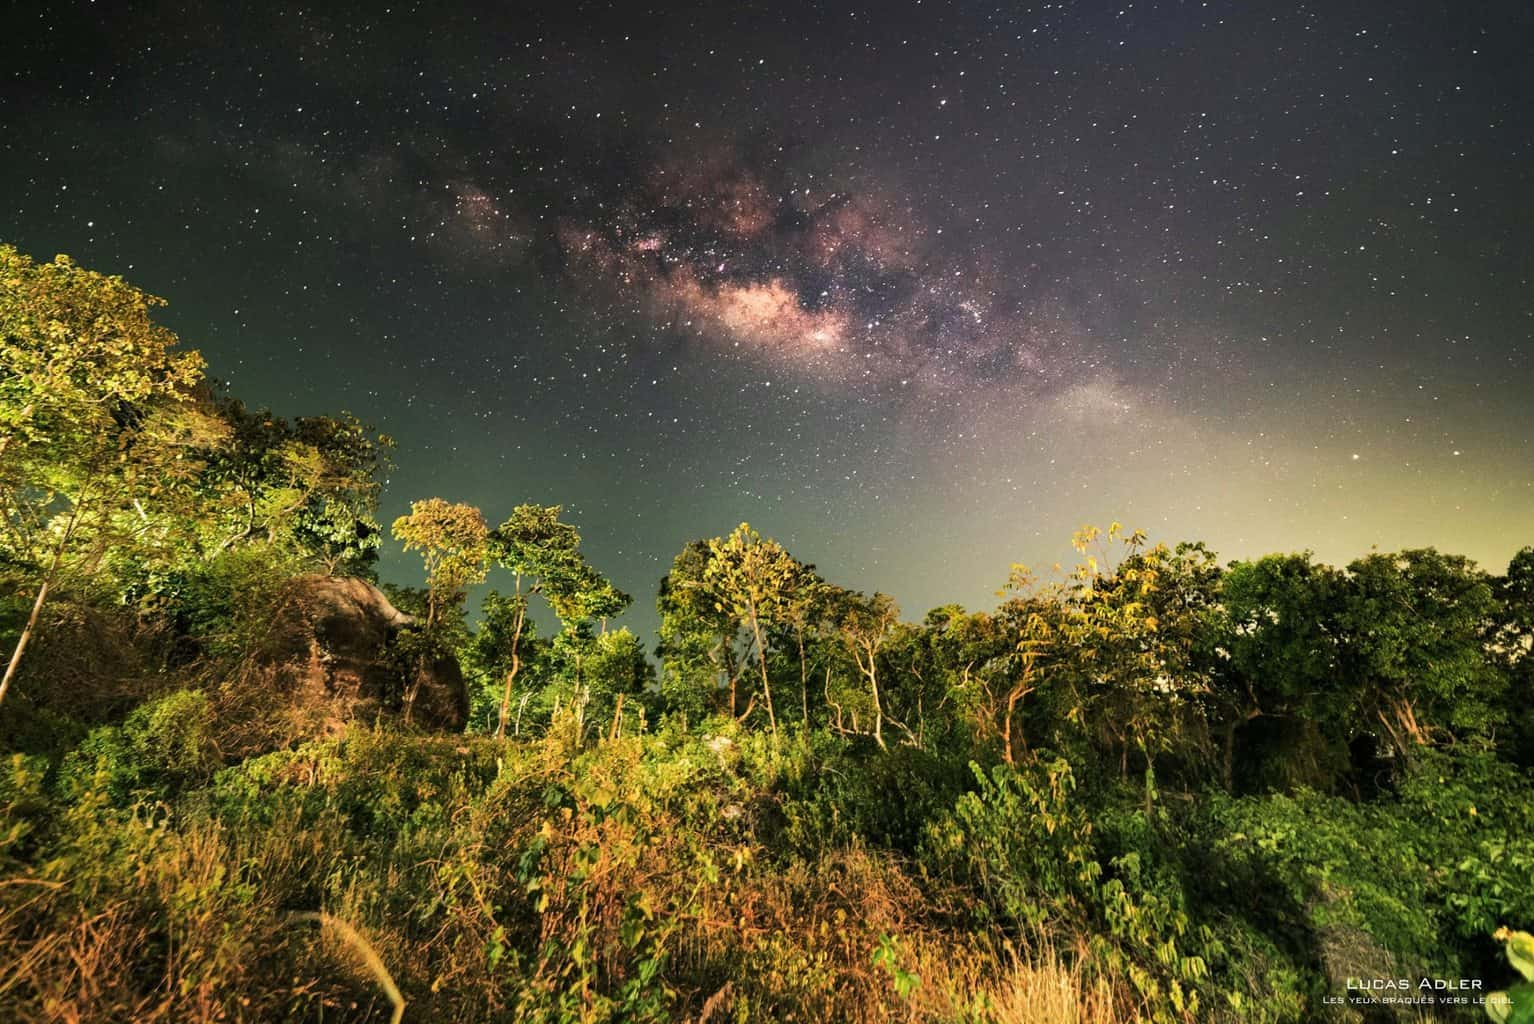 I was shooting a distant monsoon thunderstorm in the Gulf of Thailand when I saw something bright above the jungle...